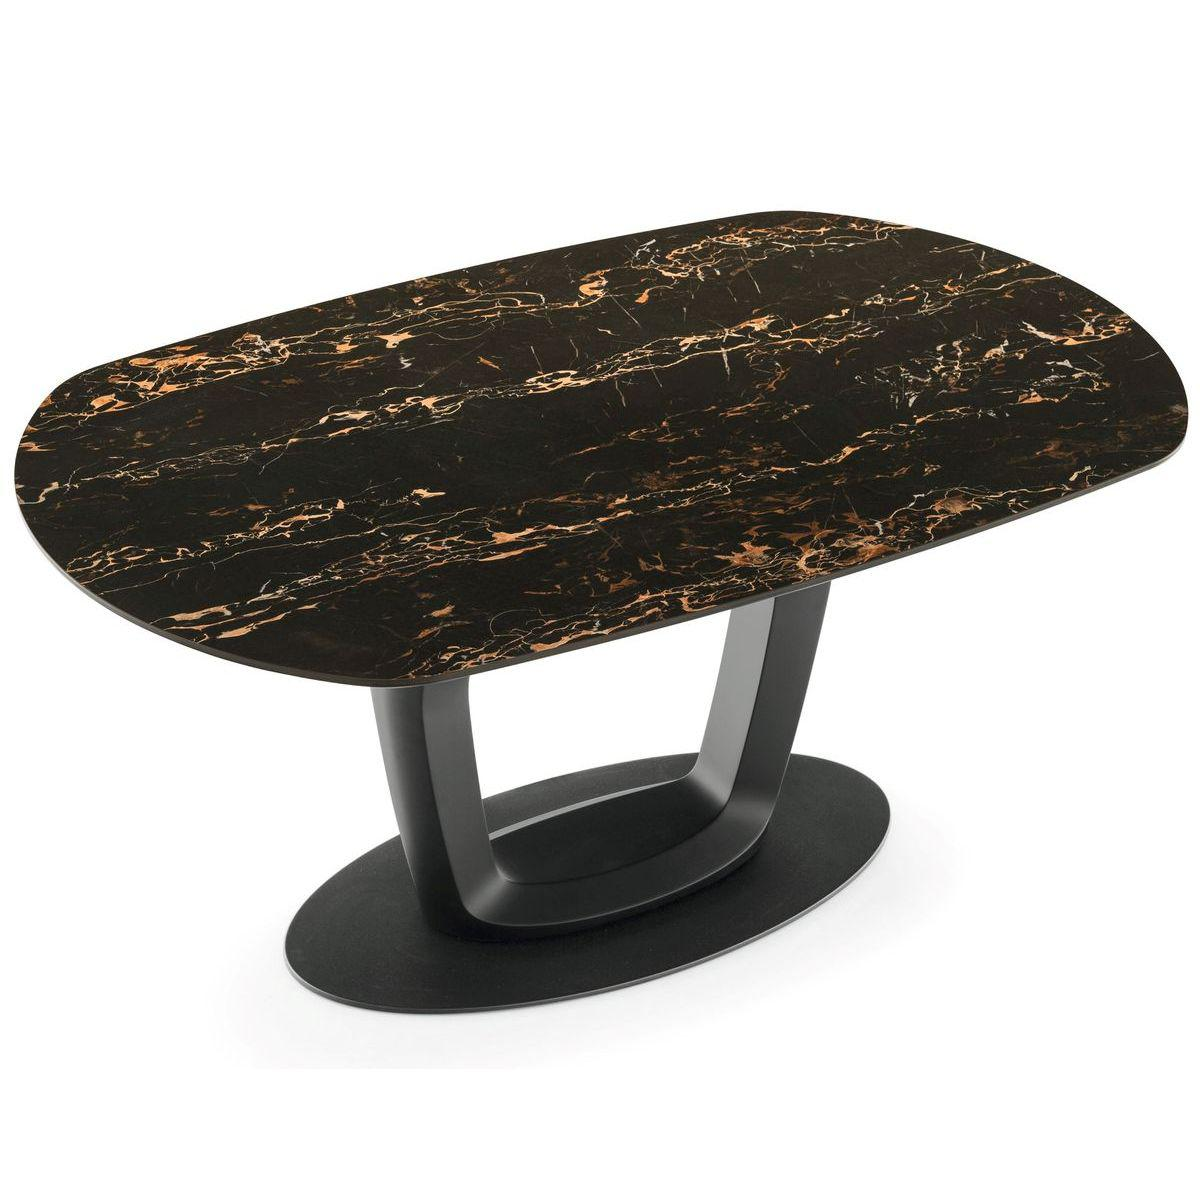 Table à rallonge ORBITAL Calligaris marbre noir